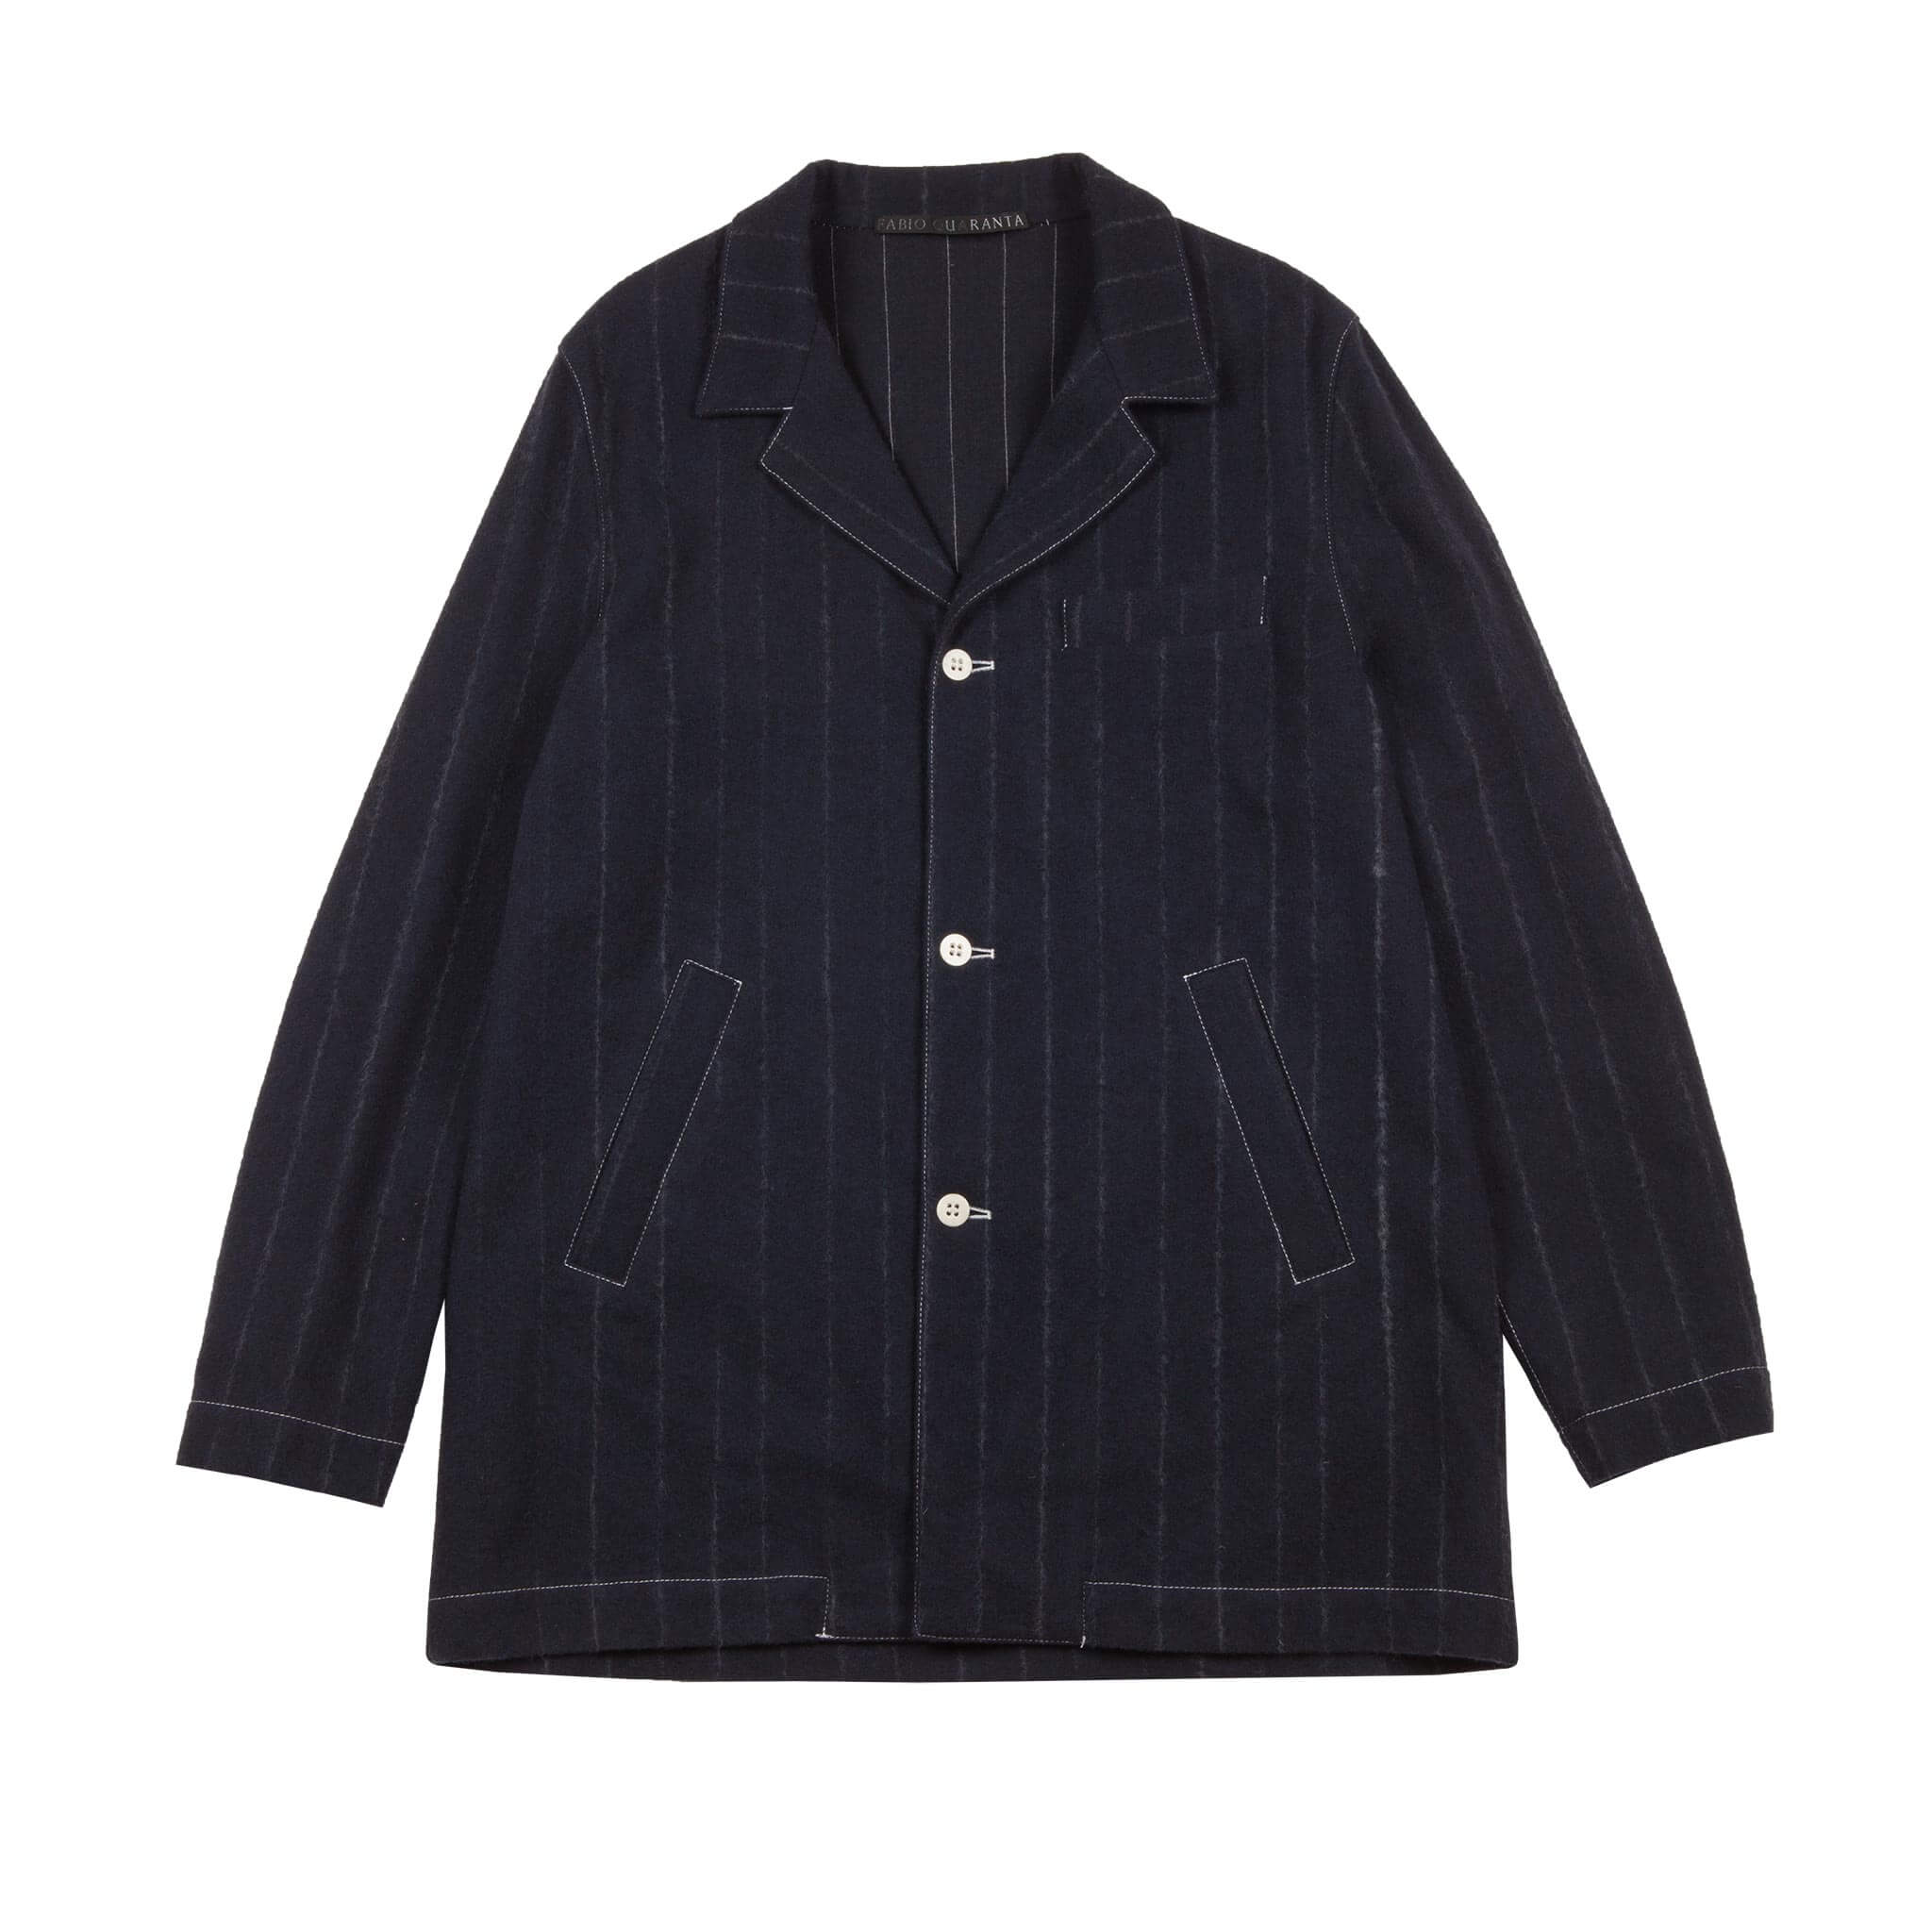 BLUE WOOL AND CASHMERE PINSTRIPE OVERSIZE JACKET 1 of 1